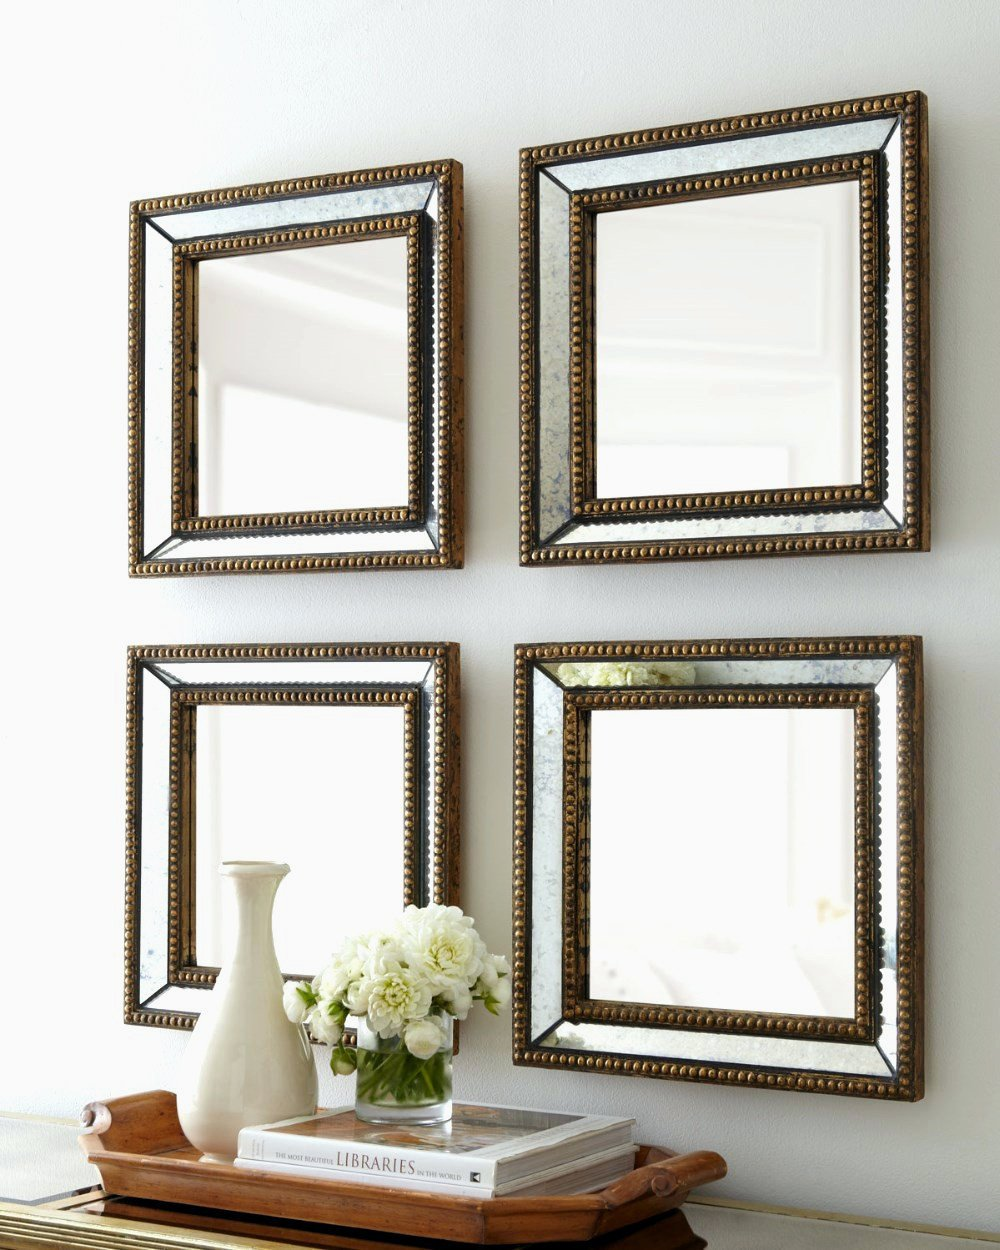 Small Mirrors for Wall Decor Unique Clever Design Ideas Wall Mirror Set Dubois Small Square Mirrors Accent Wood Designs Decoration